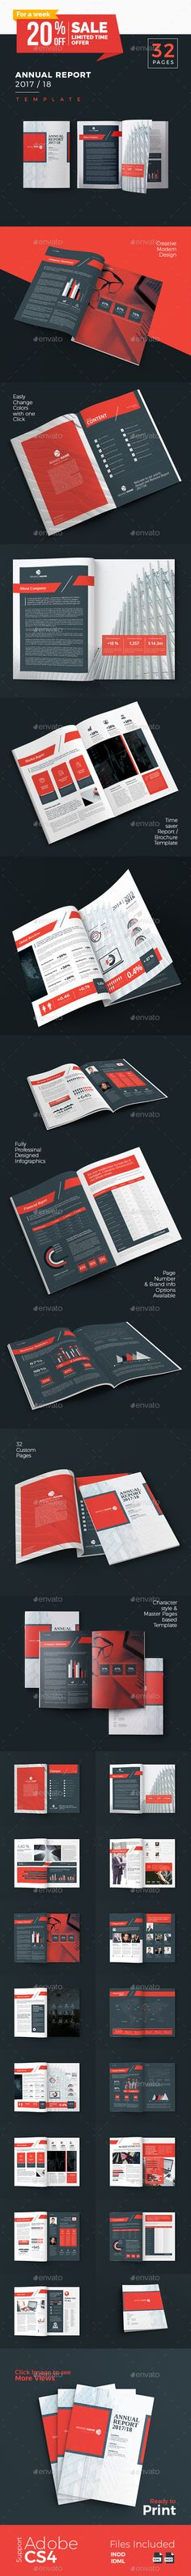 Annual Report Template INDD Annual Report Brochure Design - annual report template design